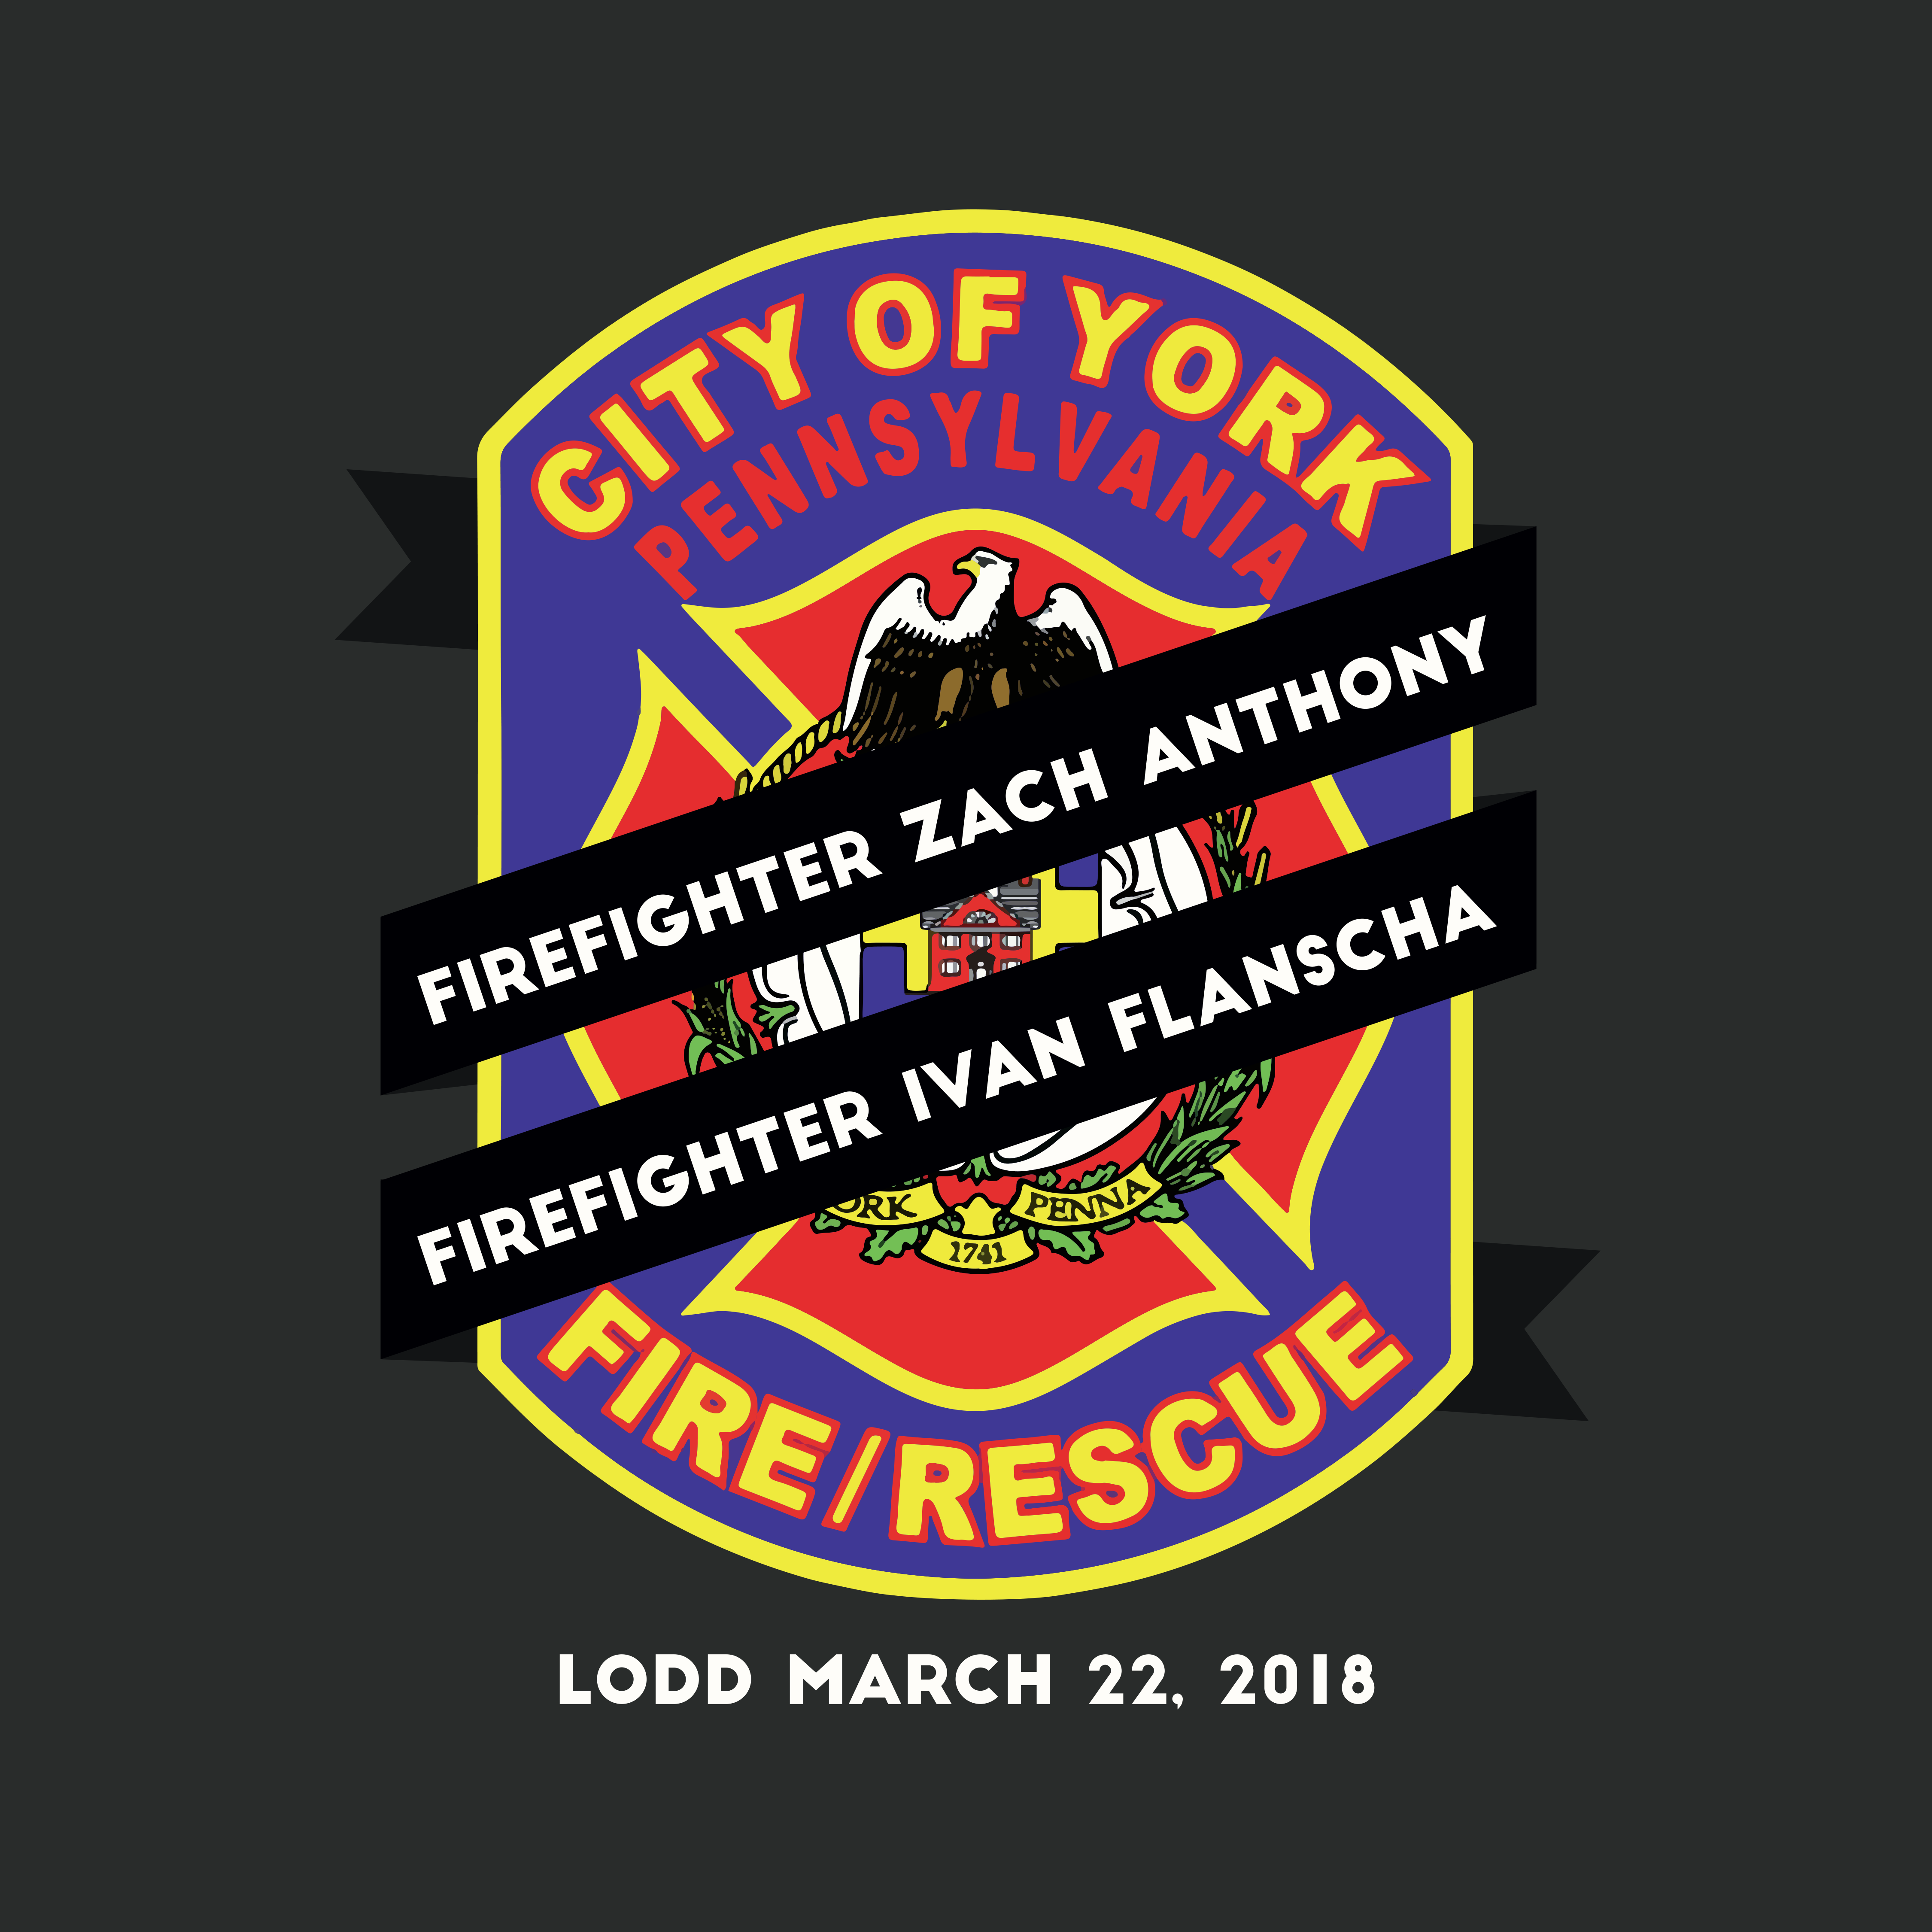 A Song for York's Heroes: Benefit Concert to Be Held for Fallen Firefighters